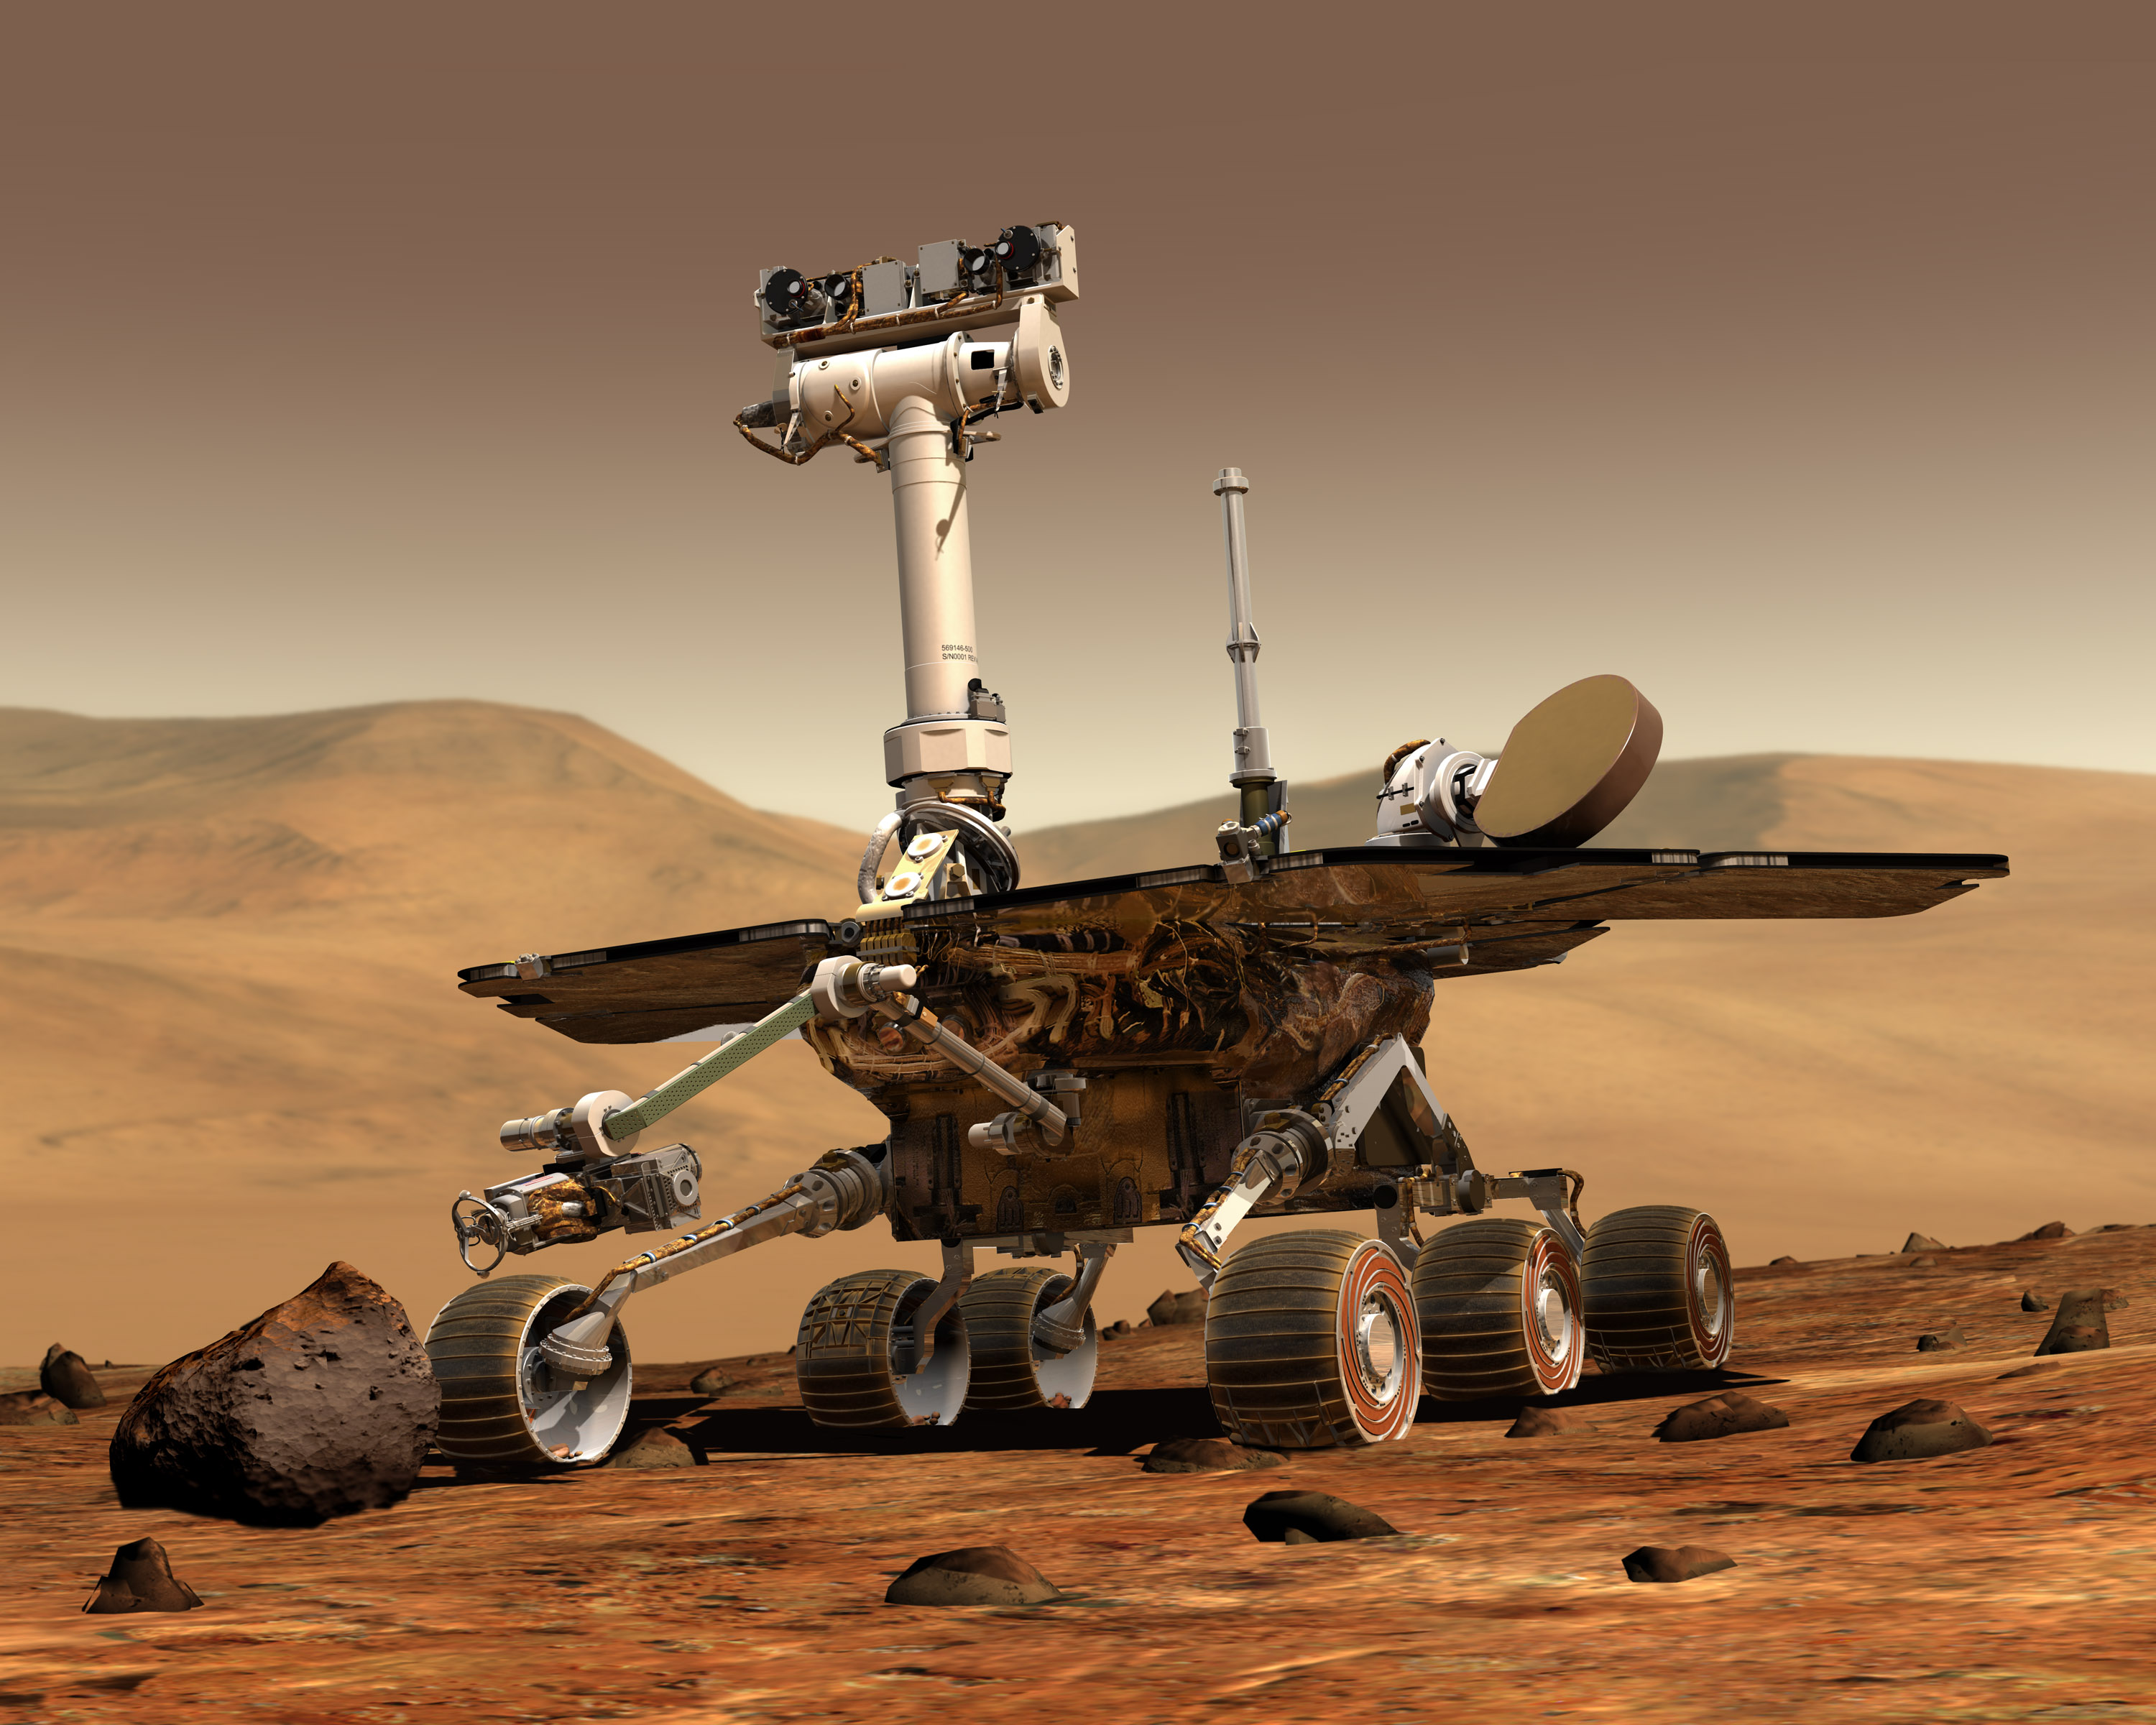 File:NASA Mars Rover.jpg - Wikipedia